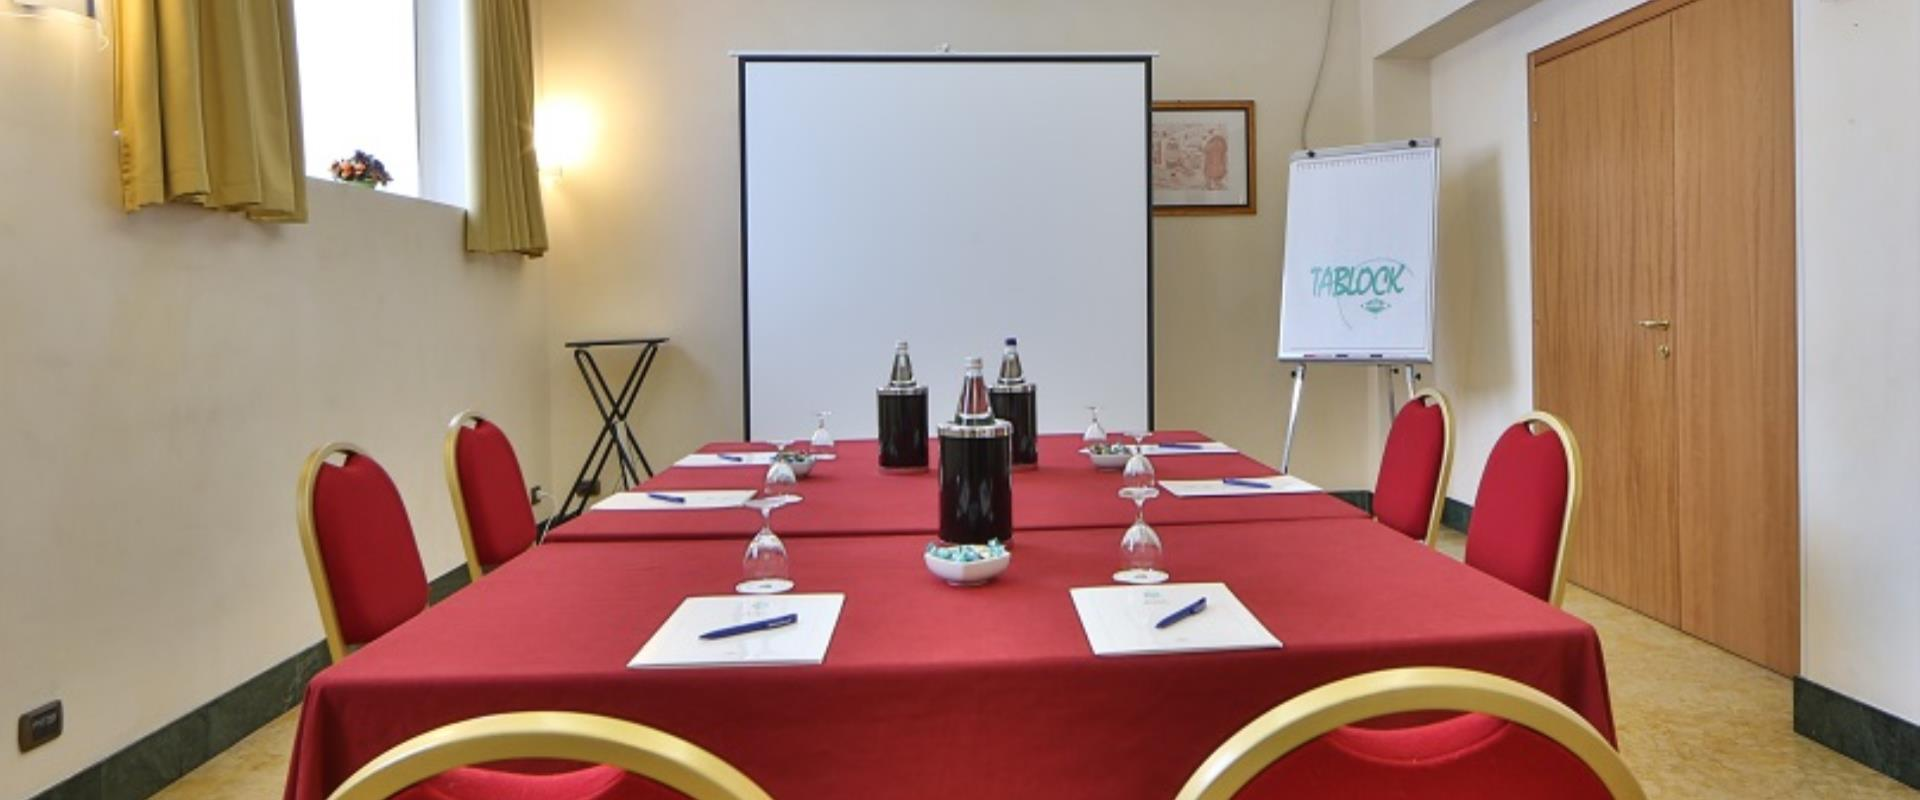 The Hotel Milano has meeting rooms equipped with all comforts